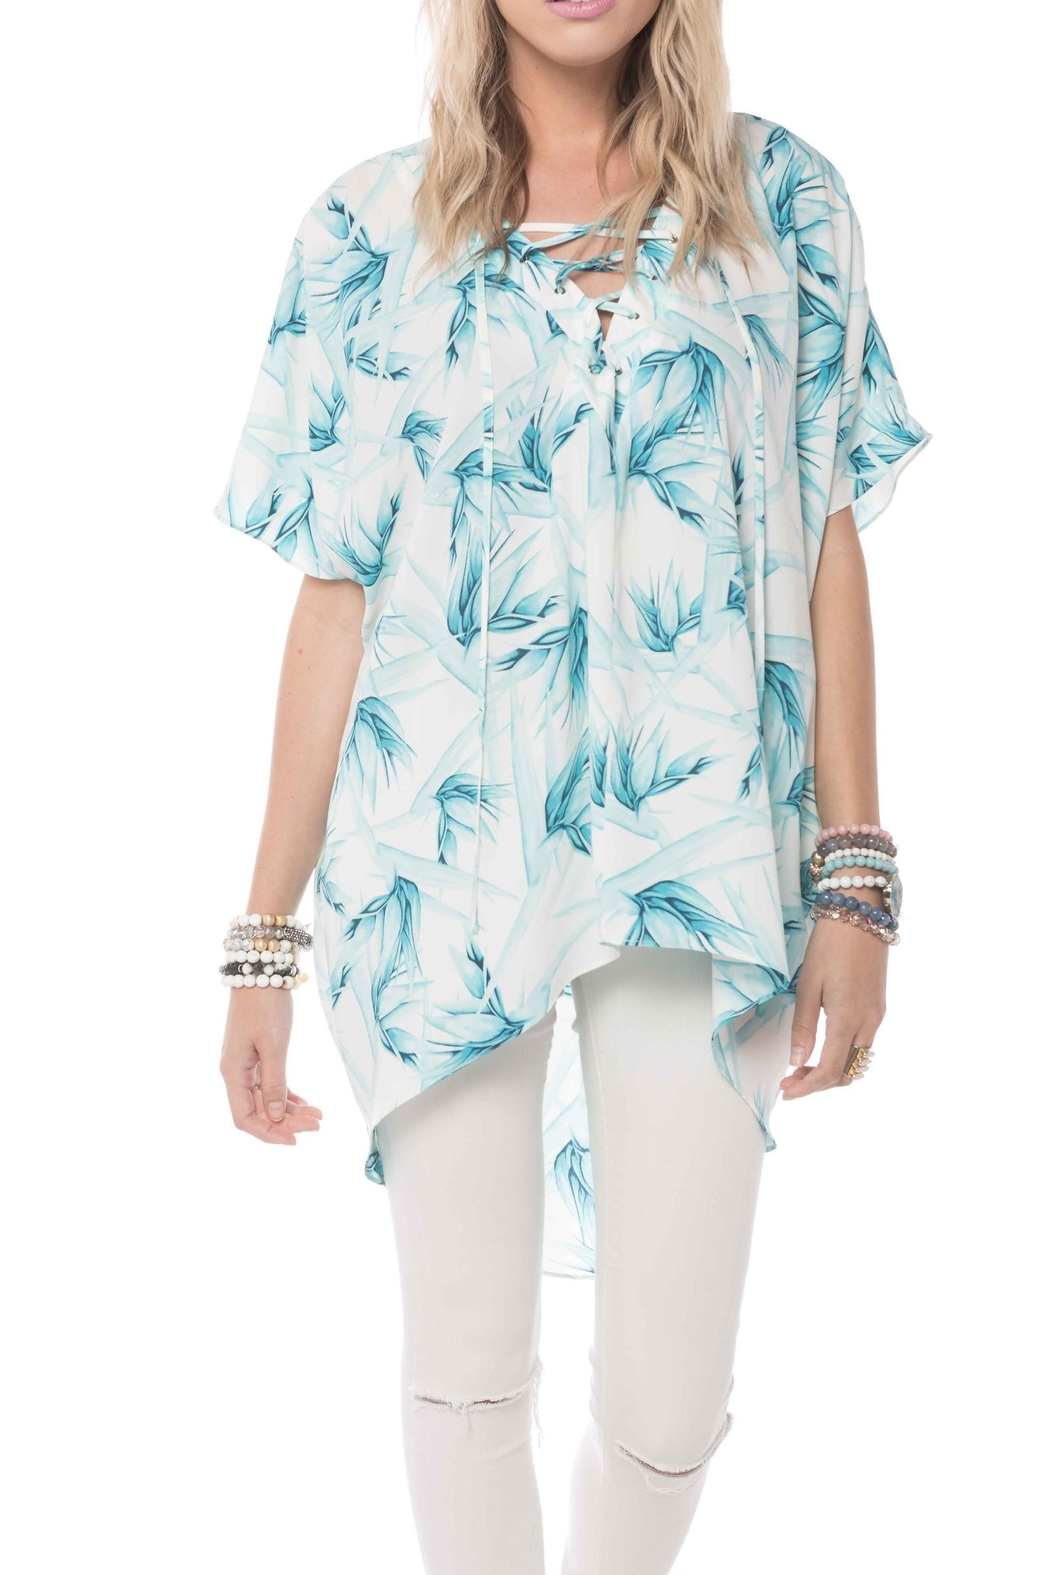 Buddy Love Lotus Tunic Top - Main Image